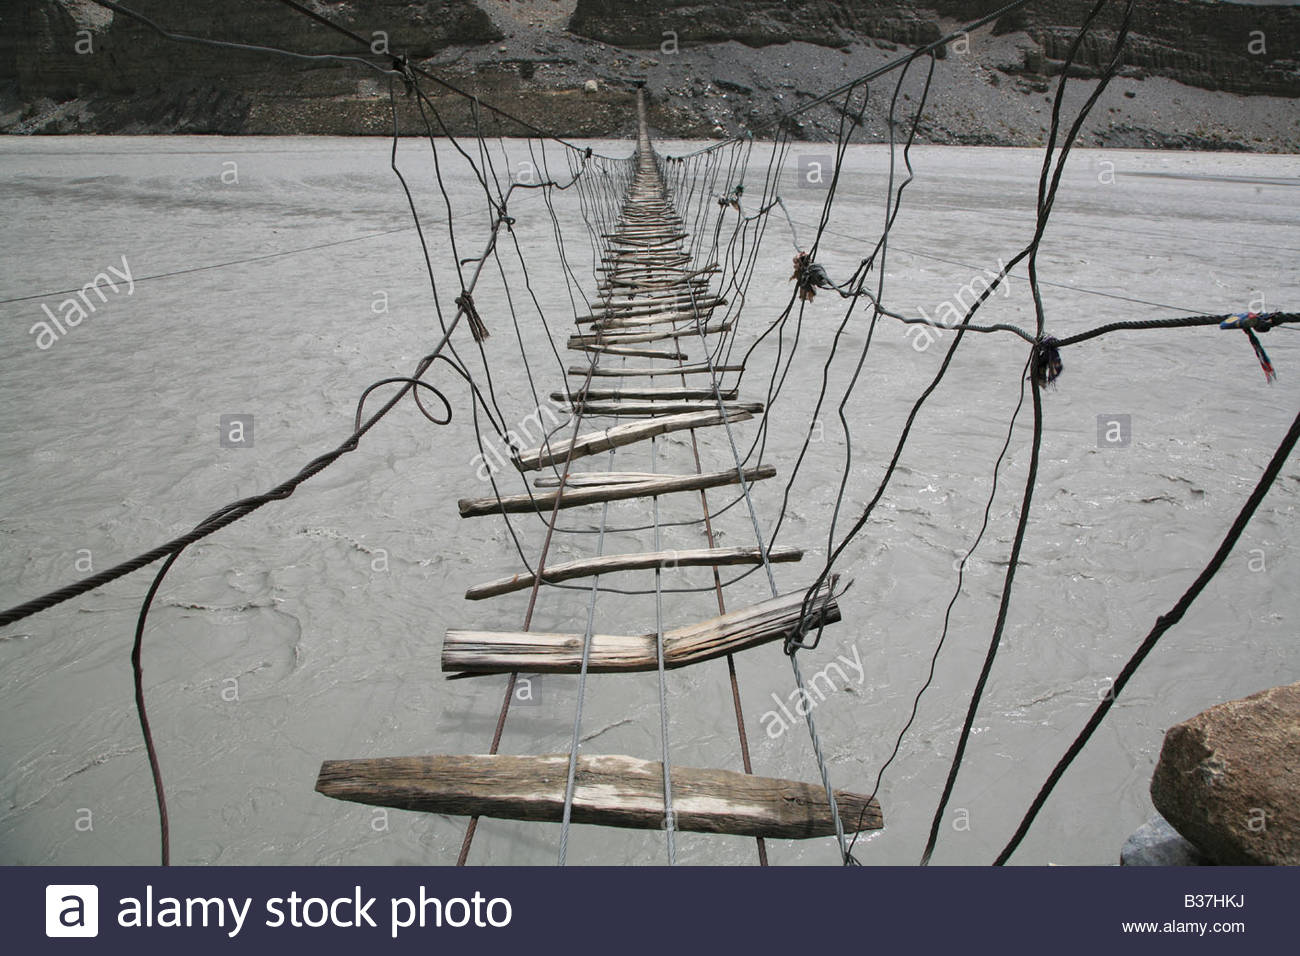 Footbridge over Hunza river, near Passu, northern Pakistan. - Stock Image